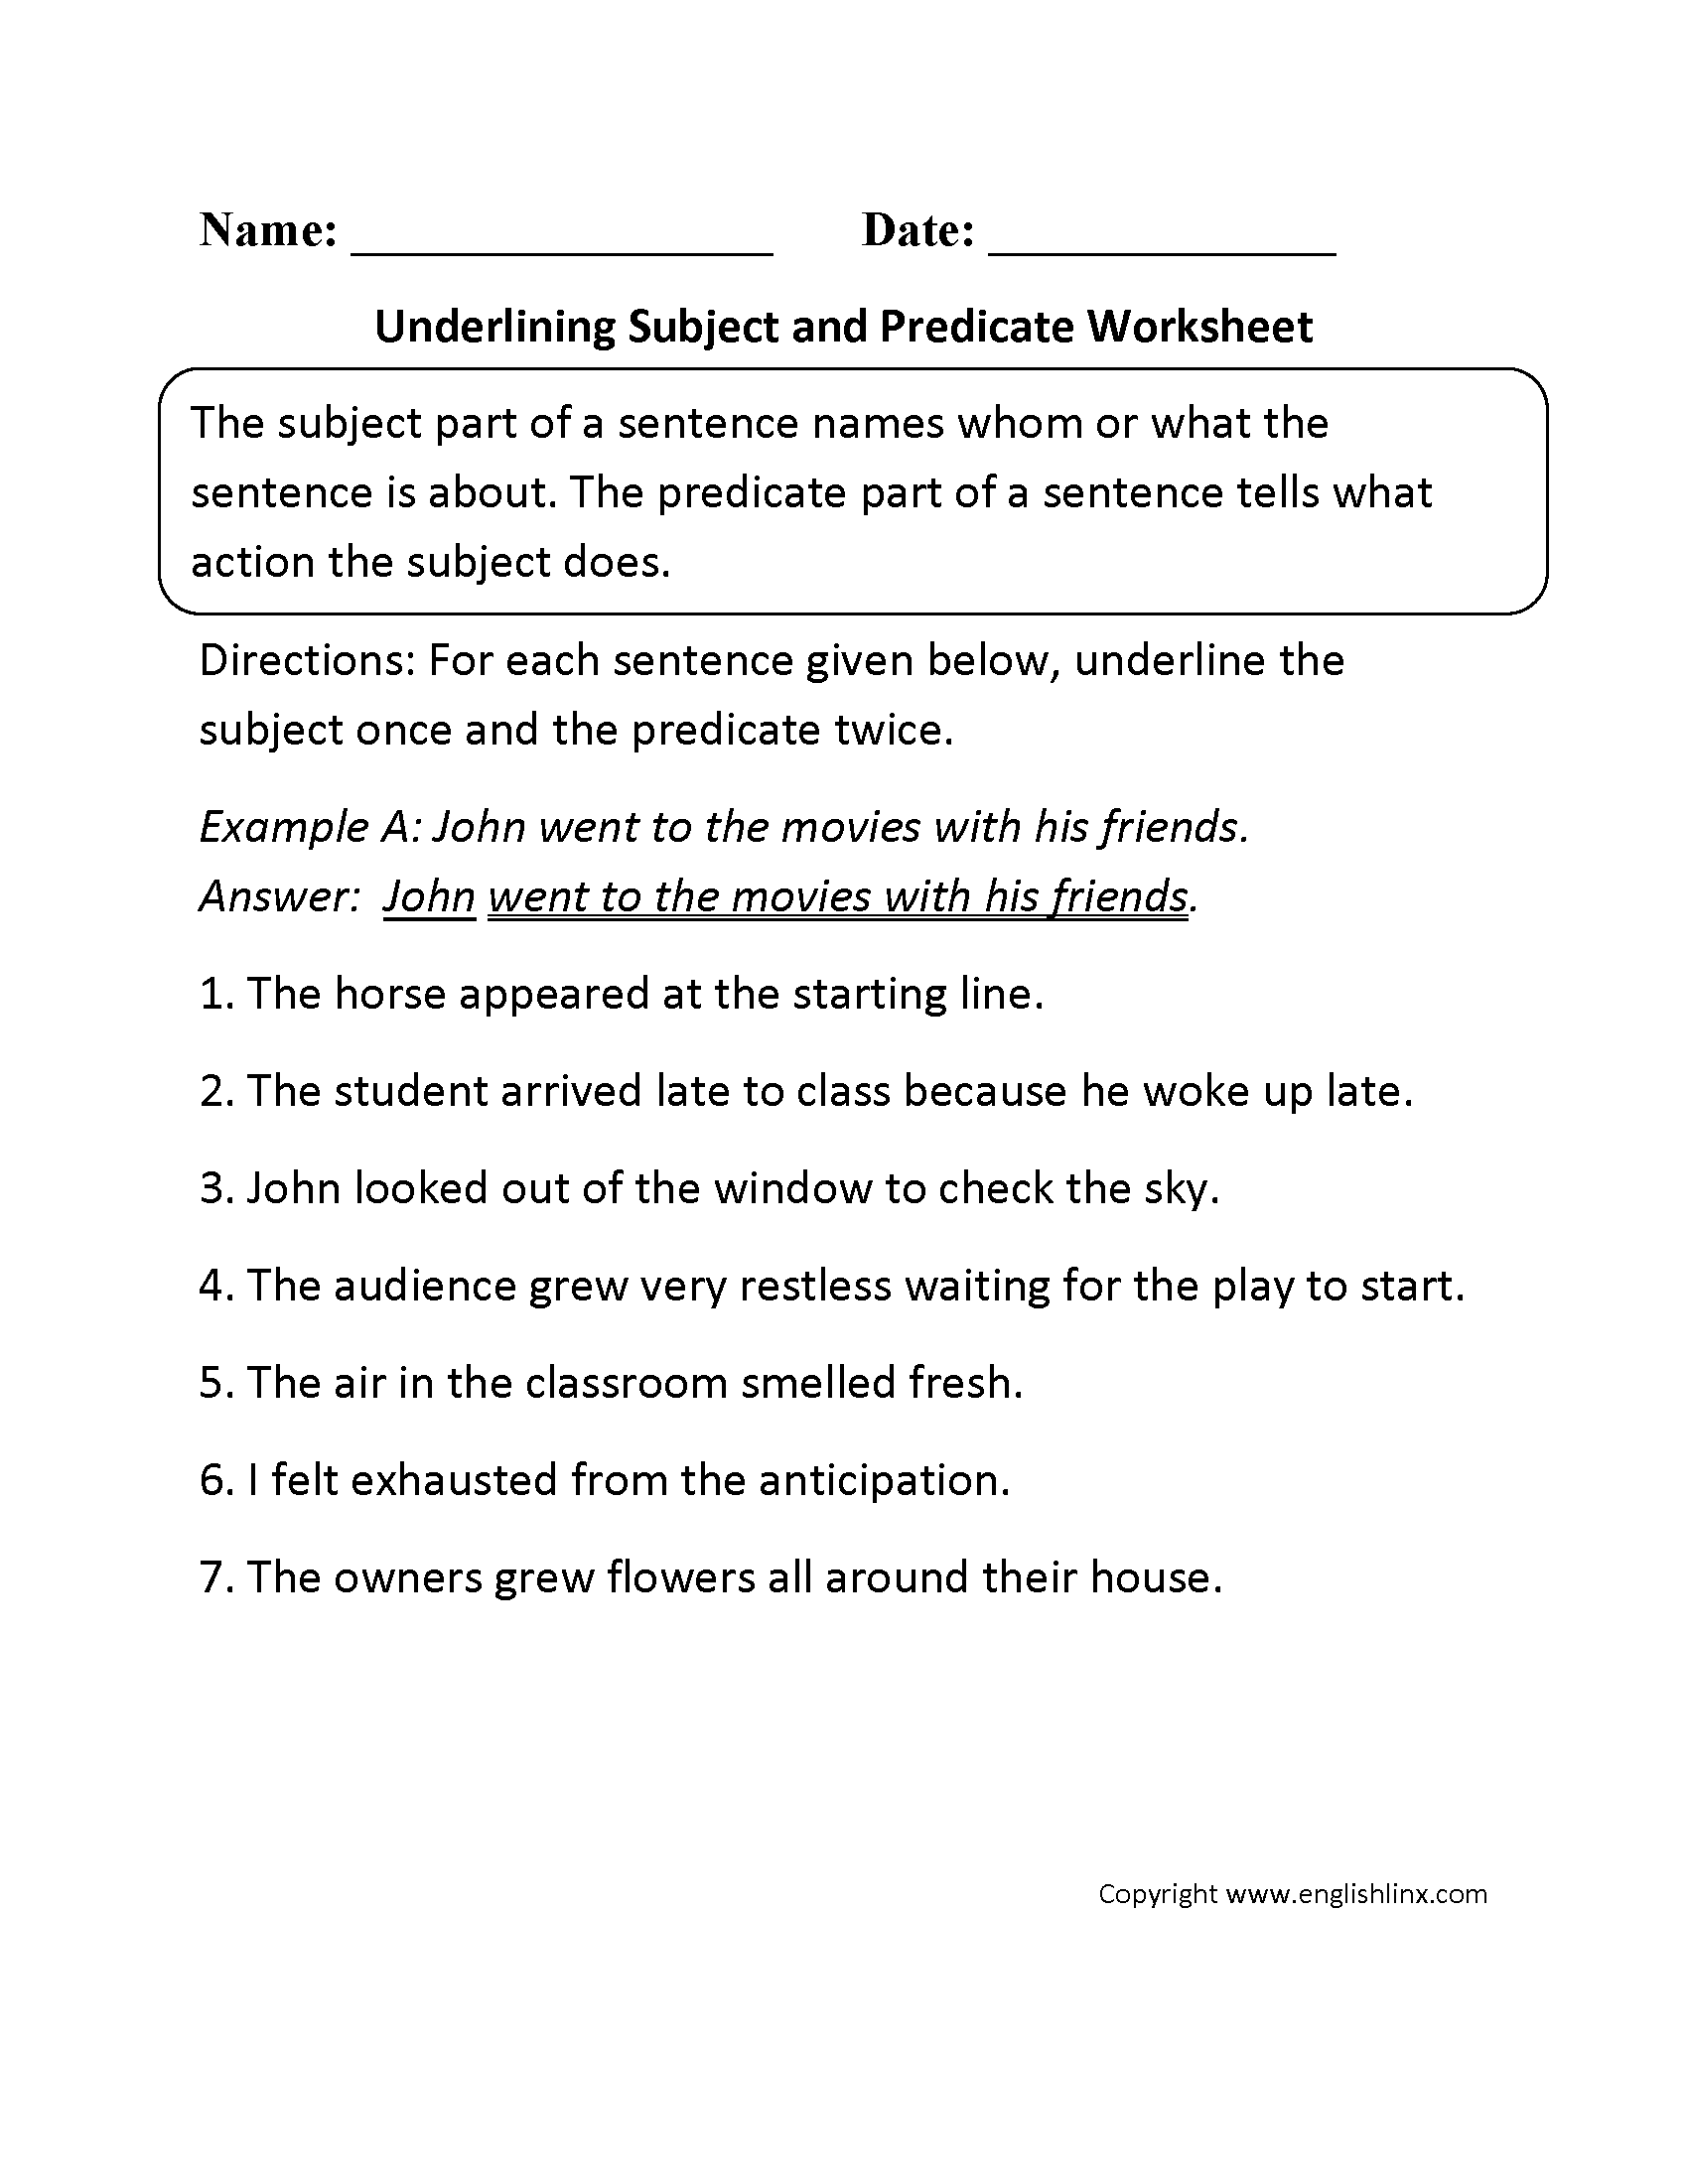 Worksheets Subject And Predicate Worksheet subject and predicate worksheets underlining or worksheet